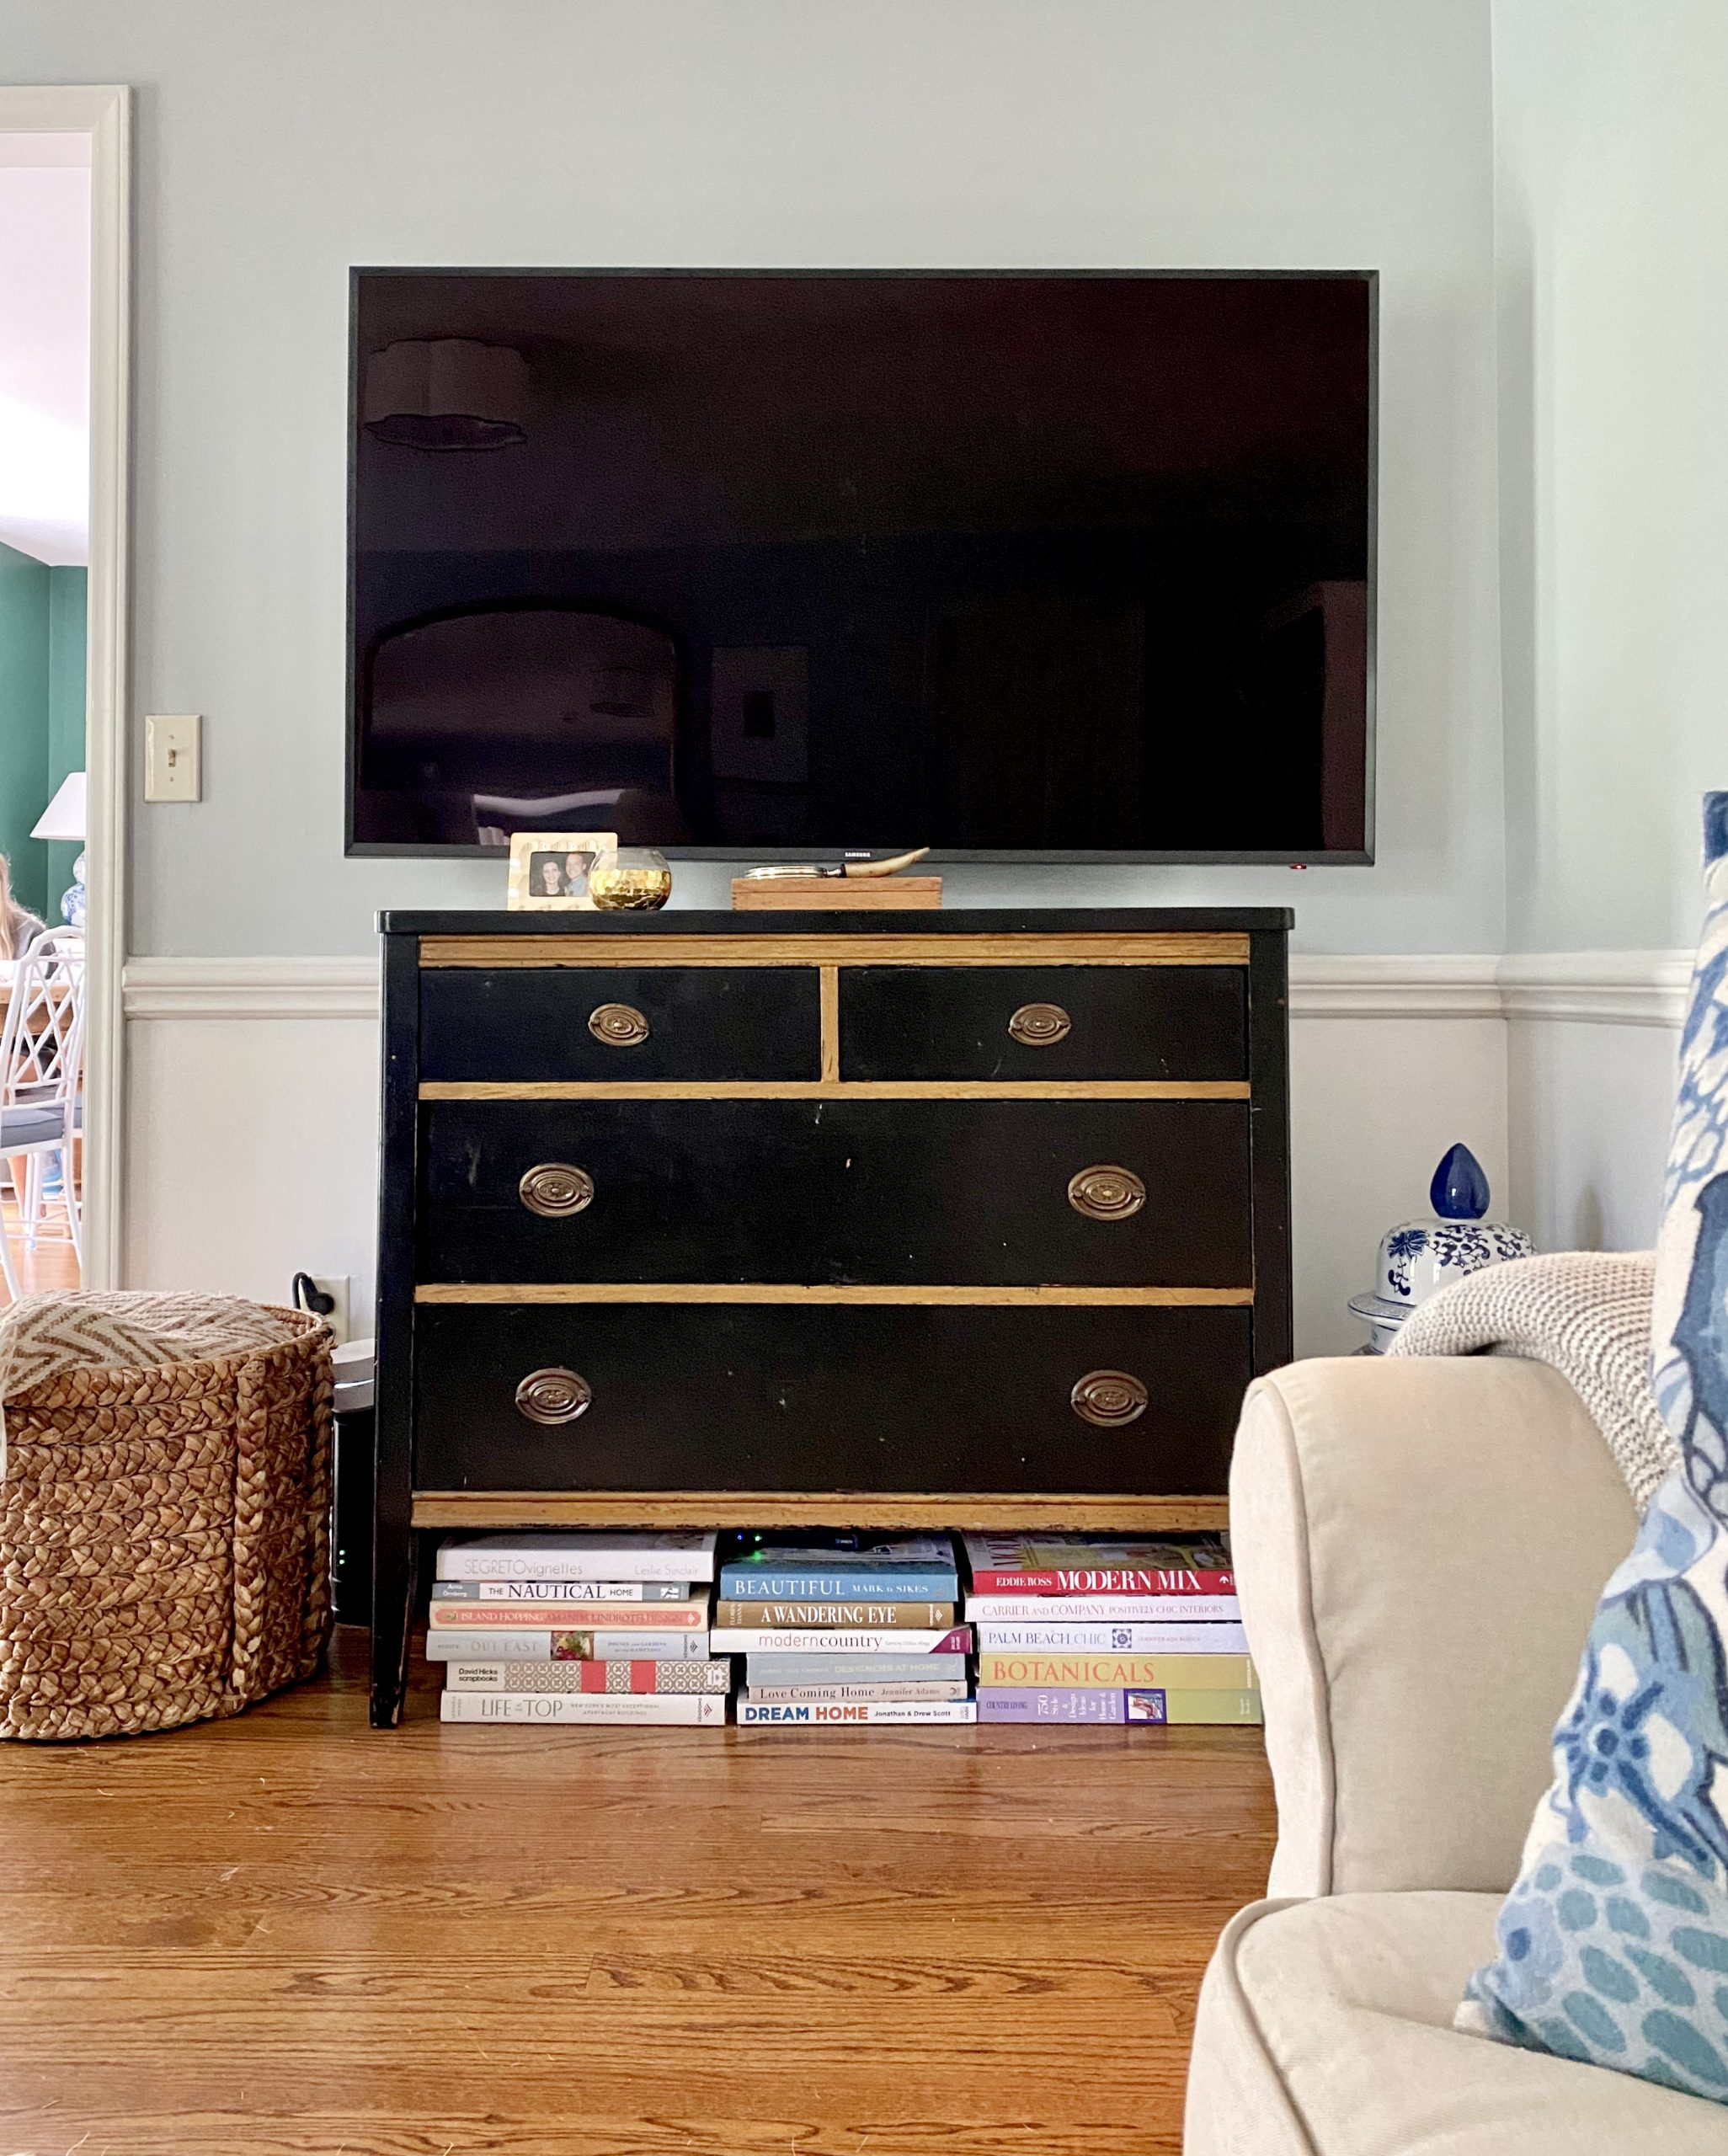 living-room-tv-dresser